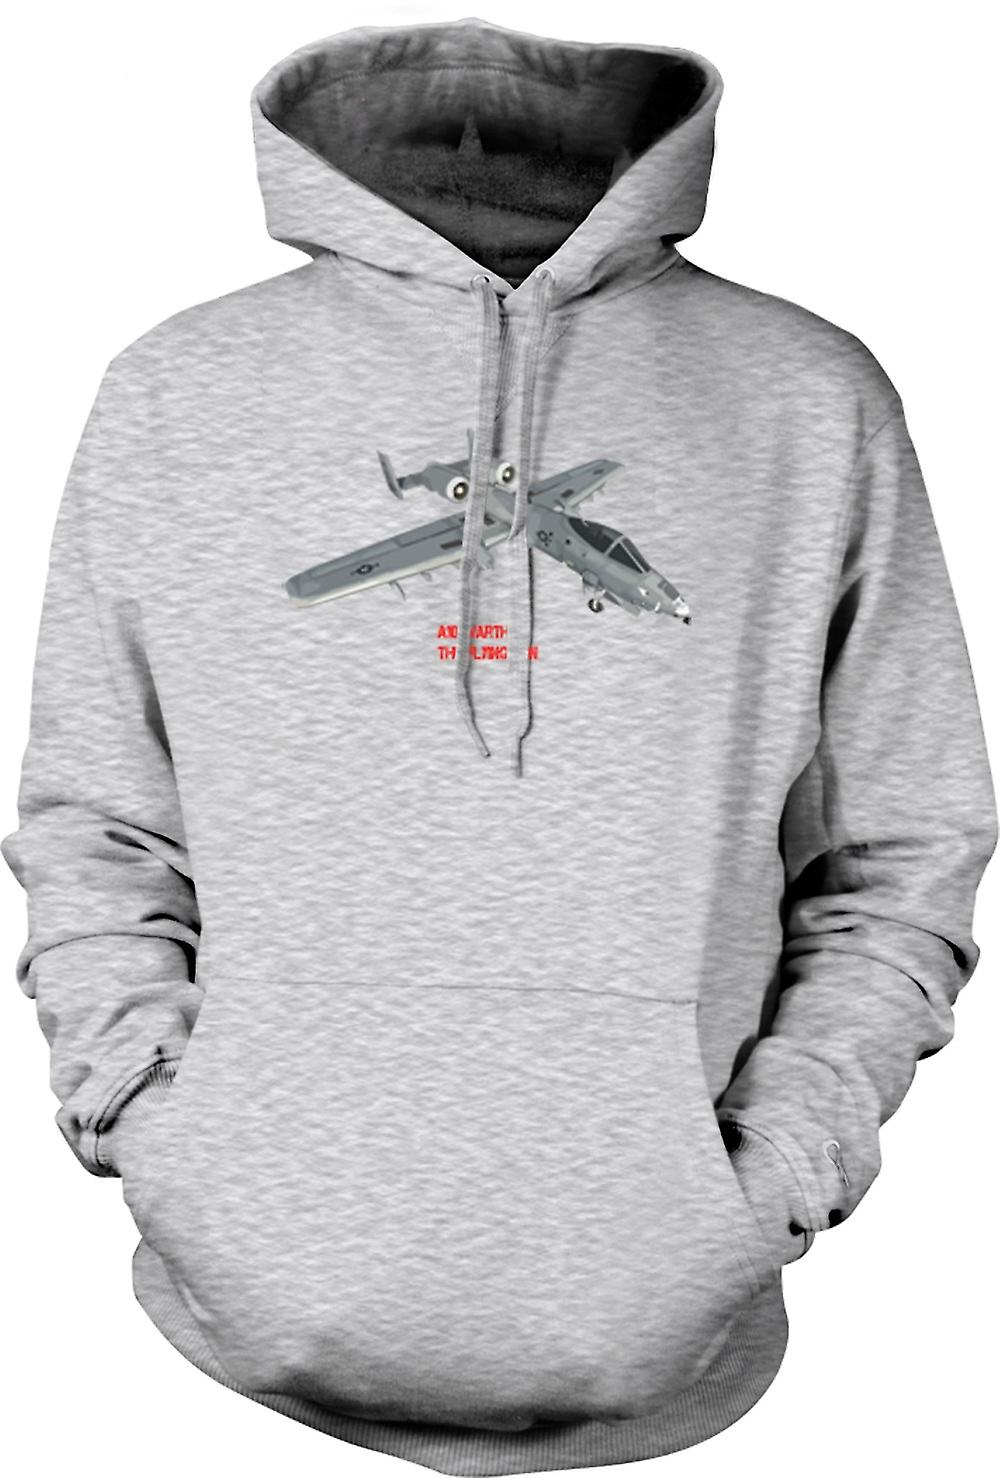 Mens Hoodie - A10 Warthog - The Flying Gun